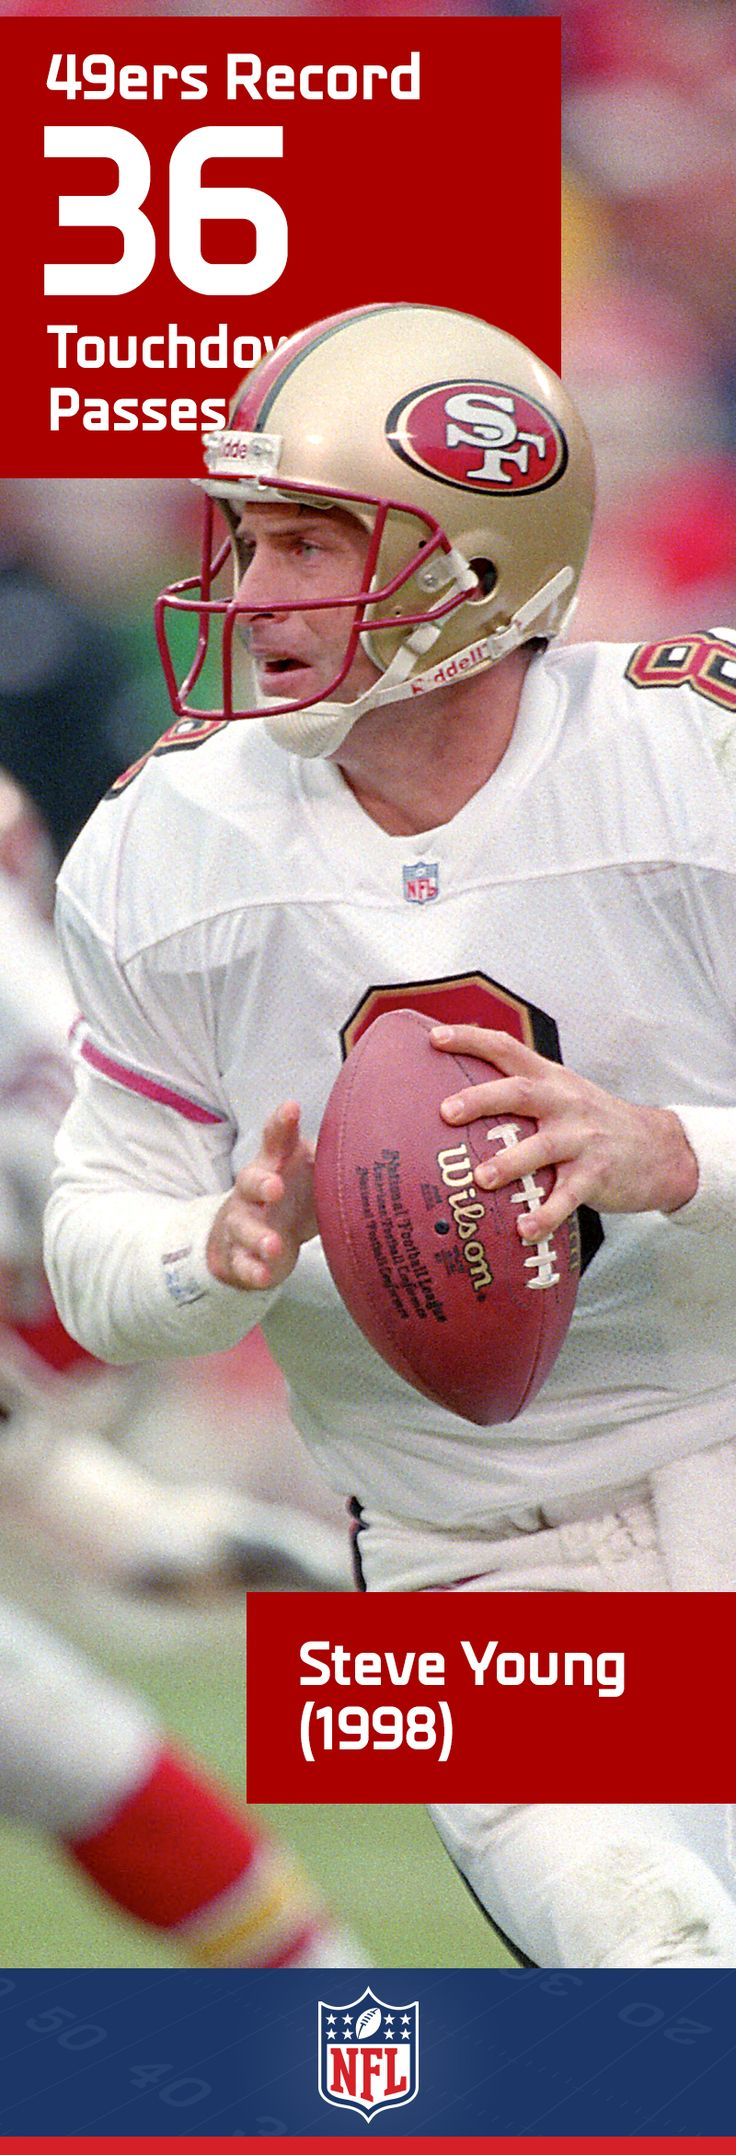 Fun fact: Steve Young also had 43 rushing touchdowns in his career, which is a record for a quarterback. A long resume of Hall of Fame achievements, this QB also holds the 49ers team record with 36 touchdown passes in 1998.